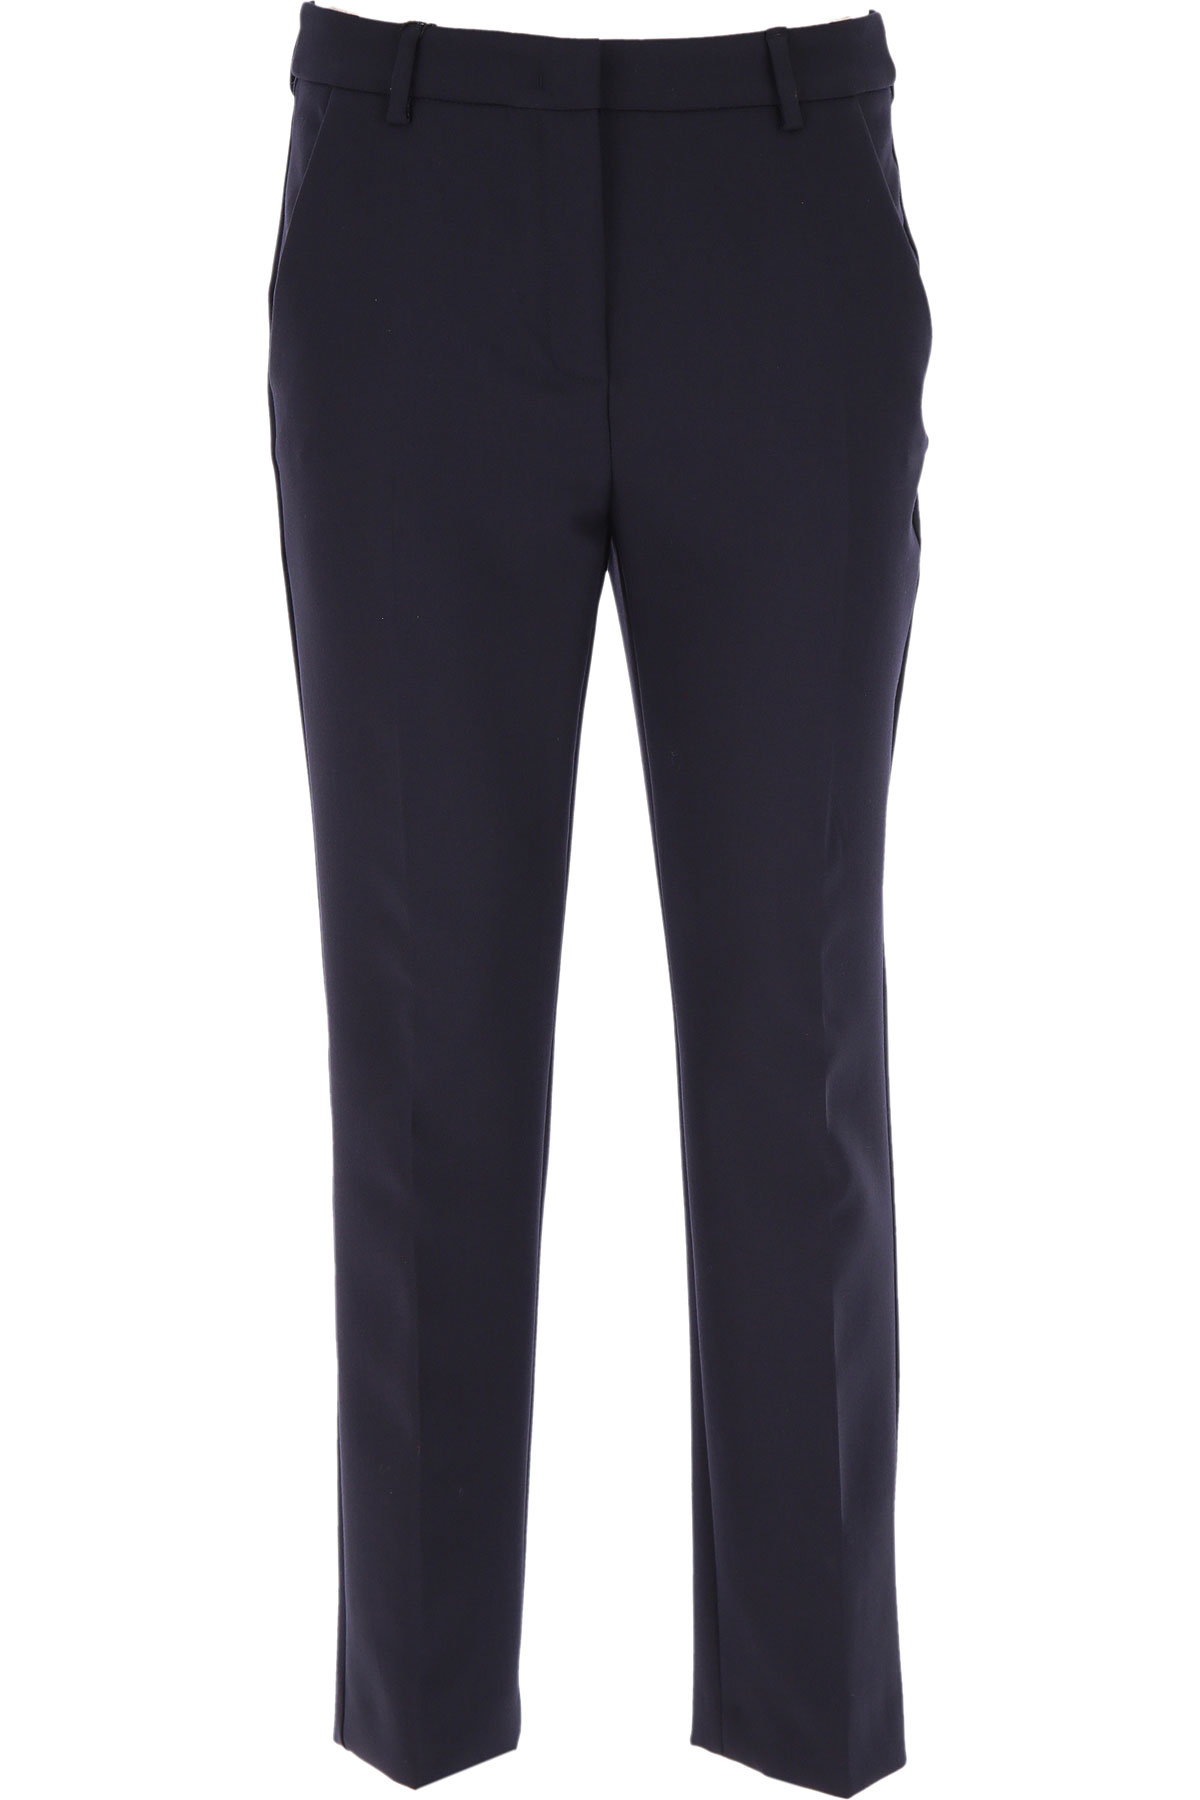 Max Mara Pants for Women On Sale, Navy Blue, polyester, 2019, 30 34 8